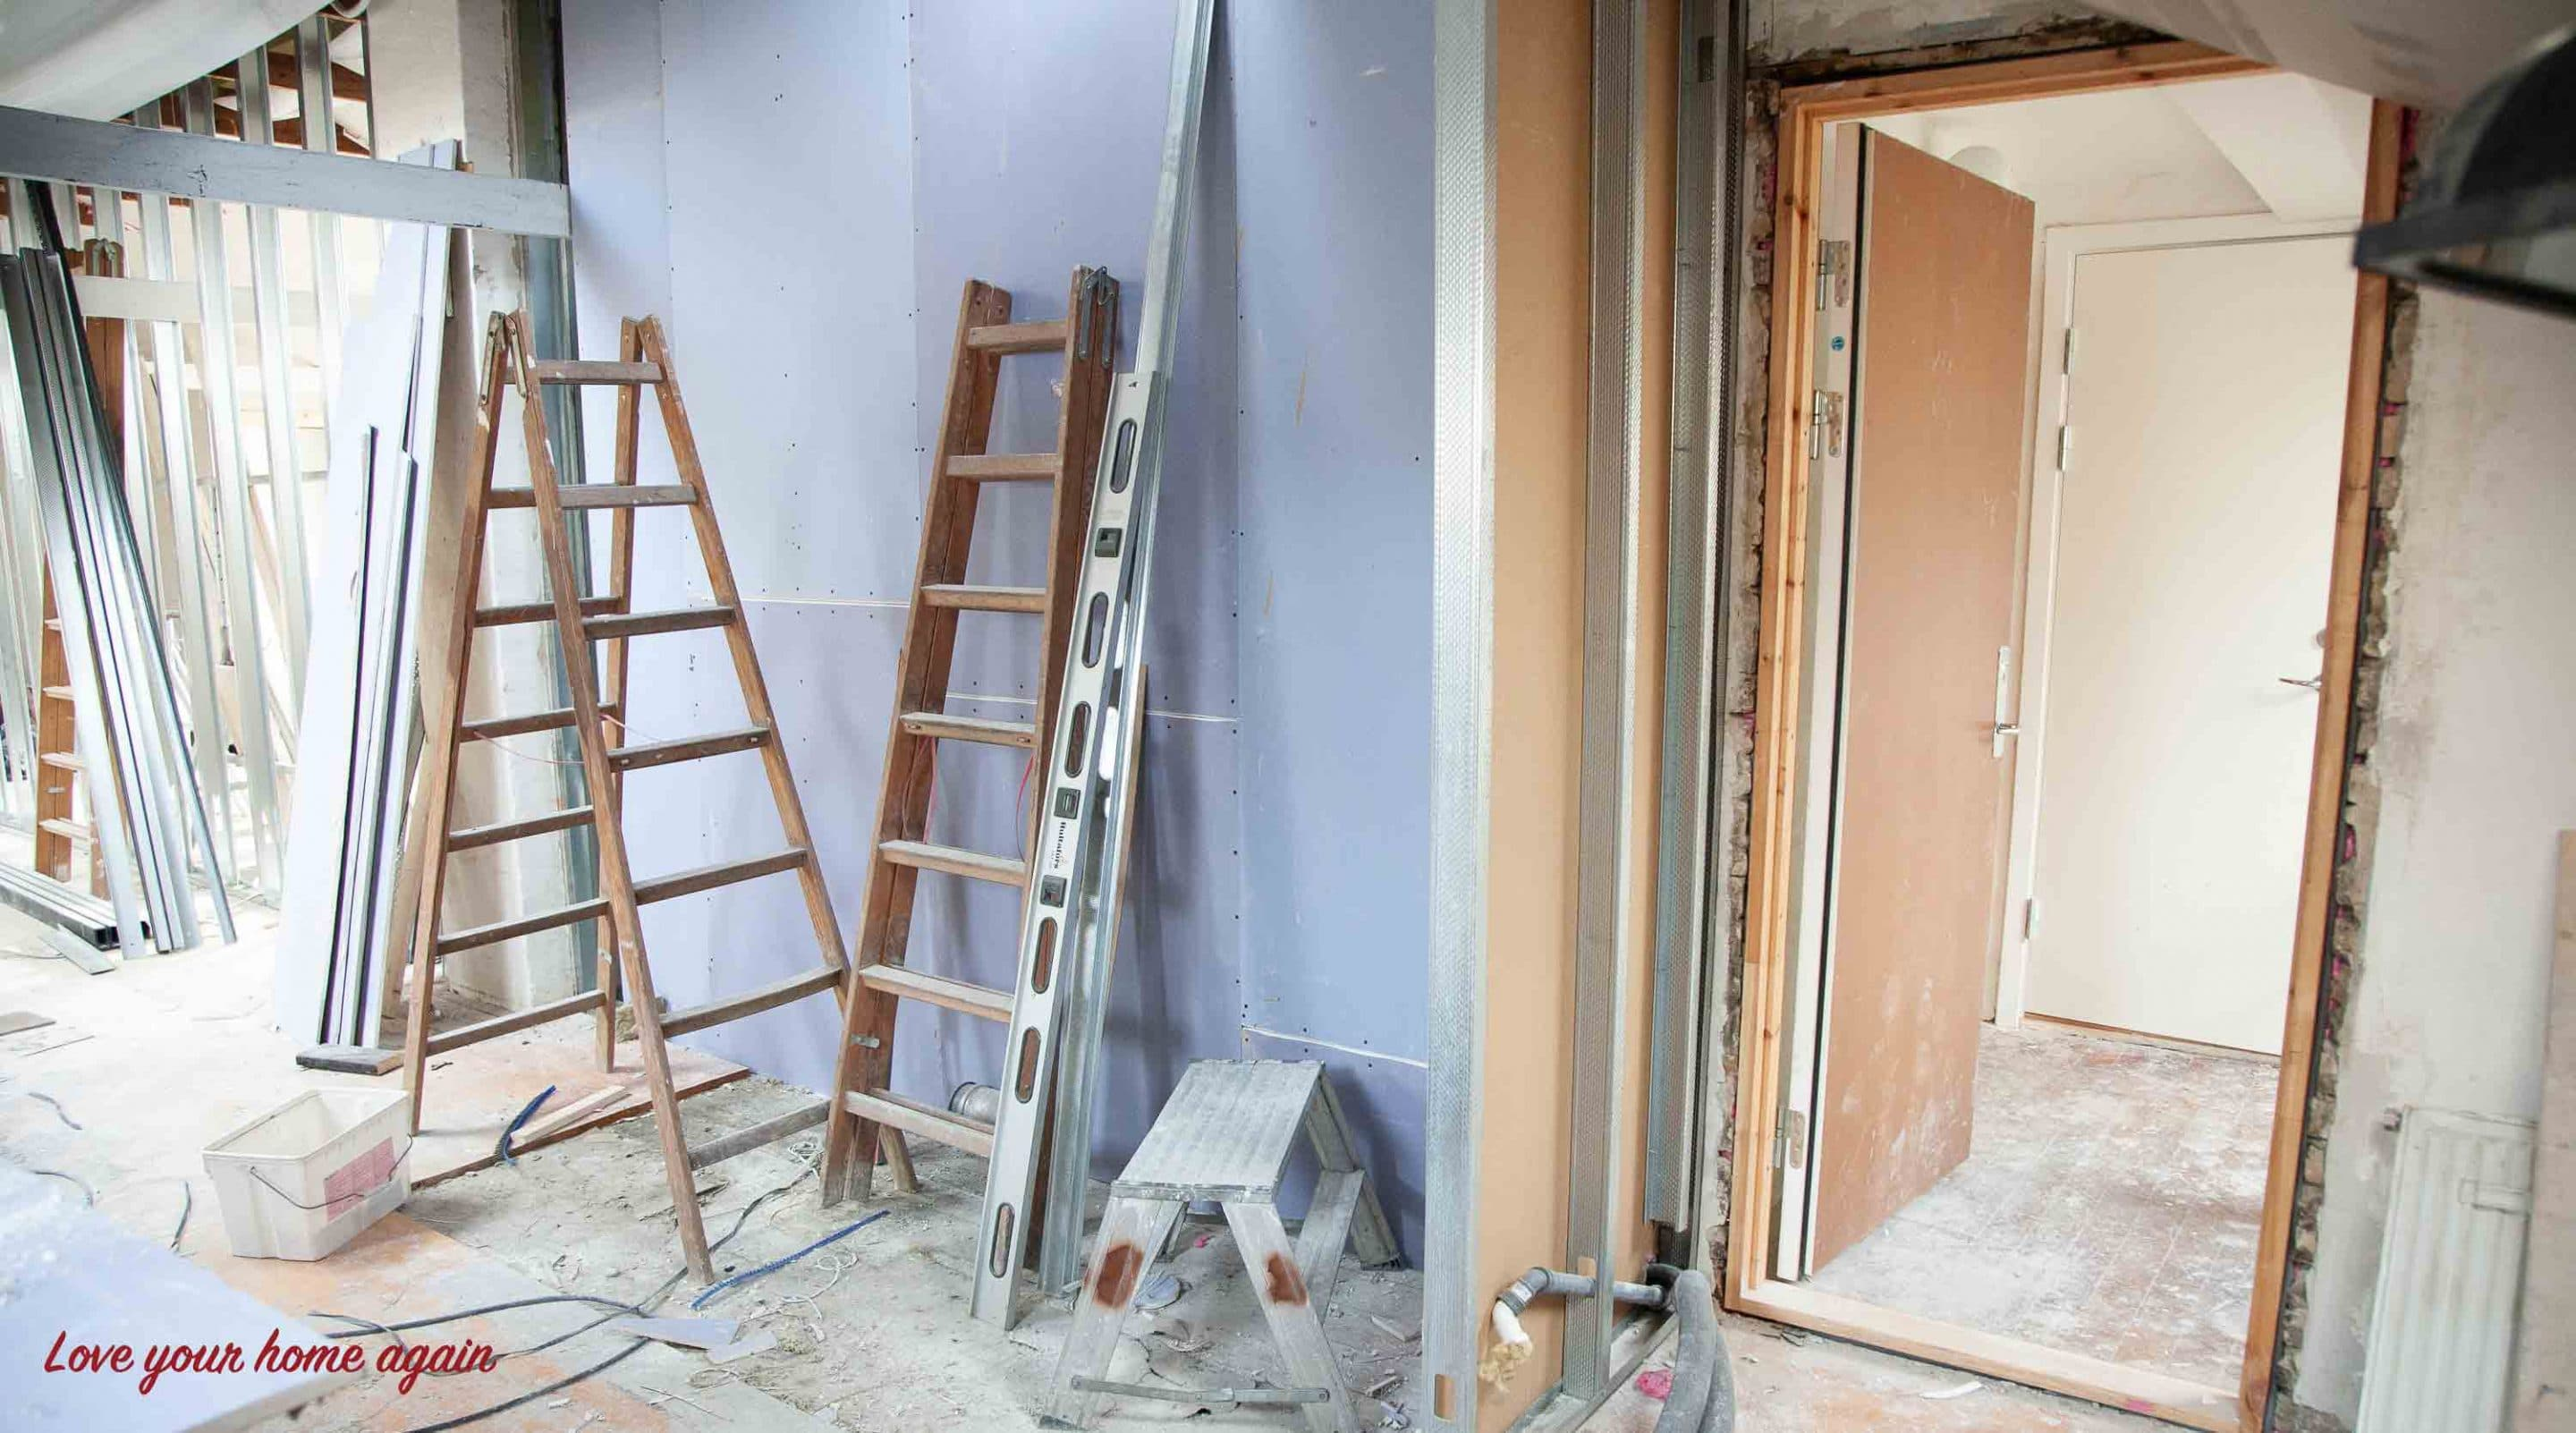 Love your home again — Renovation Tips for a Successful Project